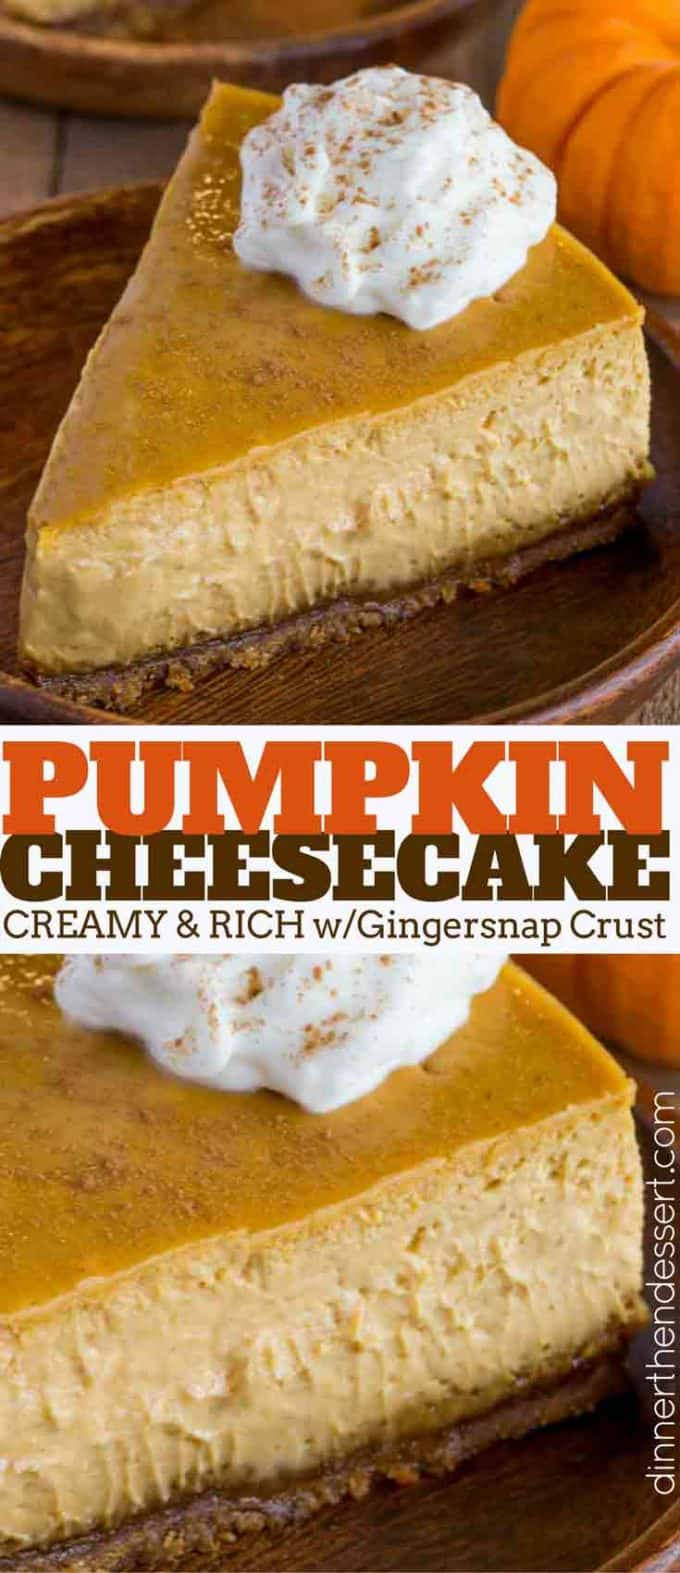 The perfect holiday dessert, this is the ULTIMATE Pumpkin Cheesecake with a gingersnap crust. #pumpkin #cheesecake #thanksgiving #christmas #dessert dinnerthendessert.com